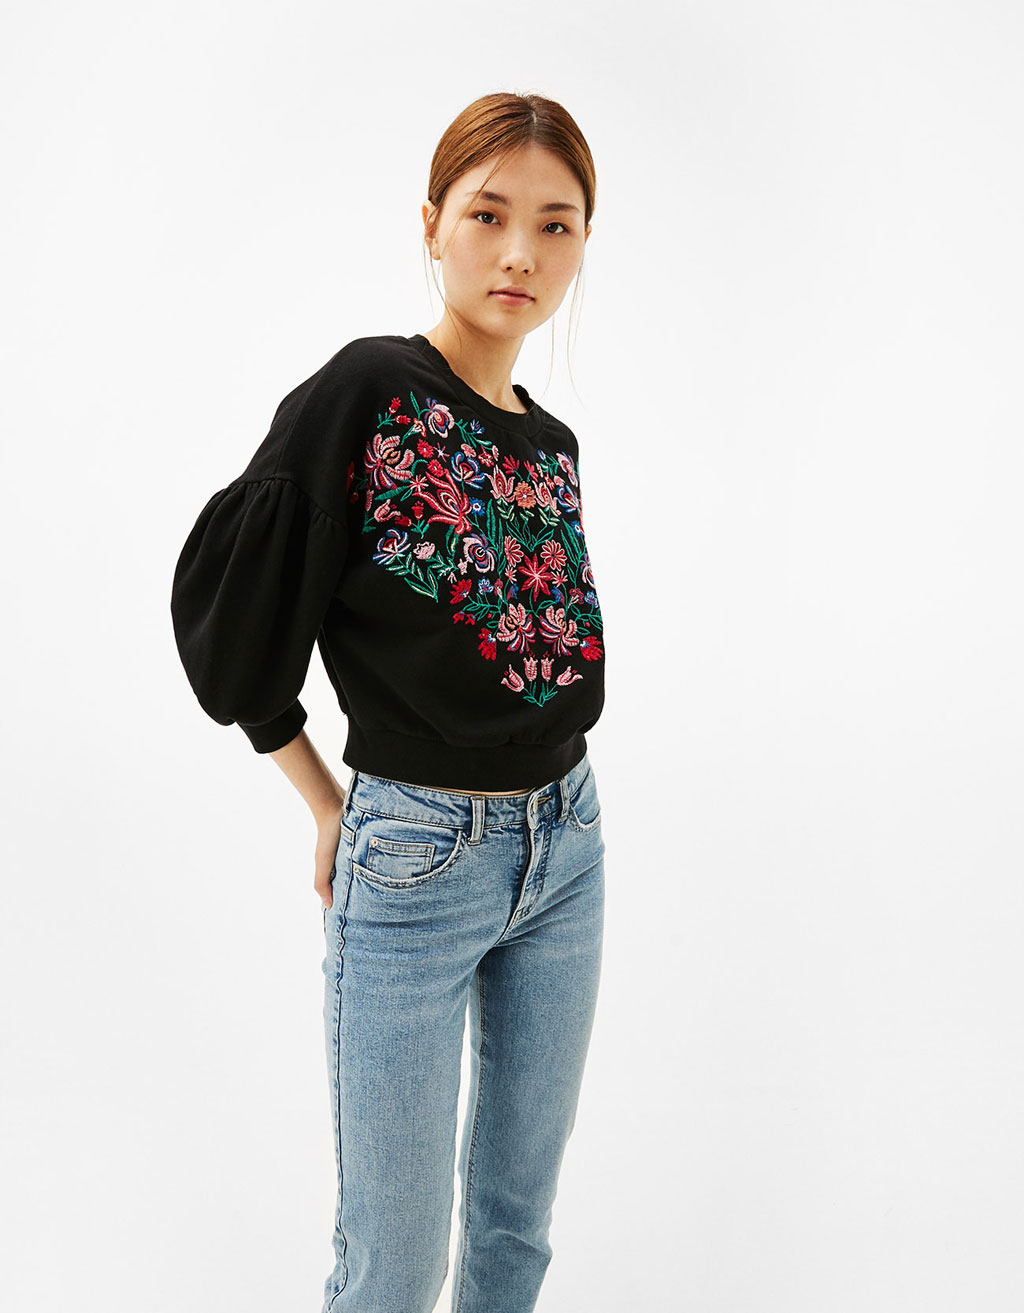 Floral embroidered sweatshirt with full sleeves